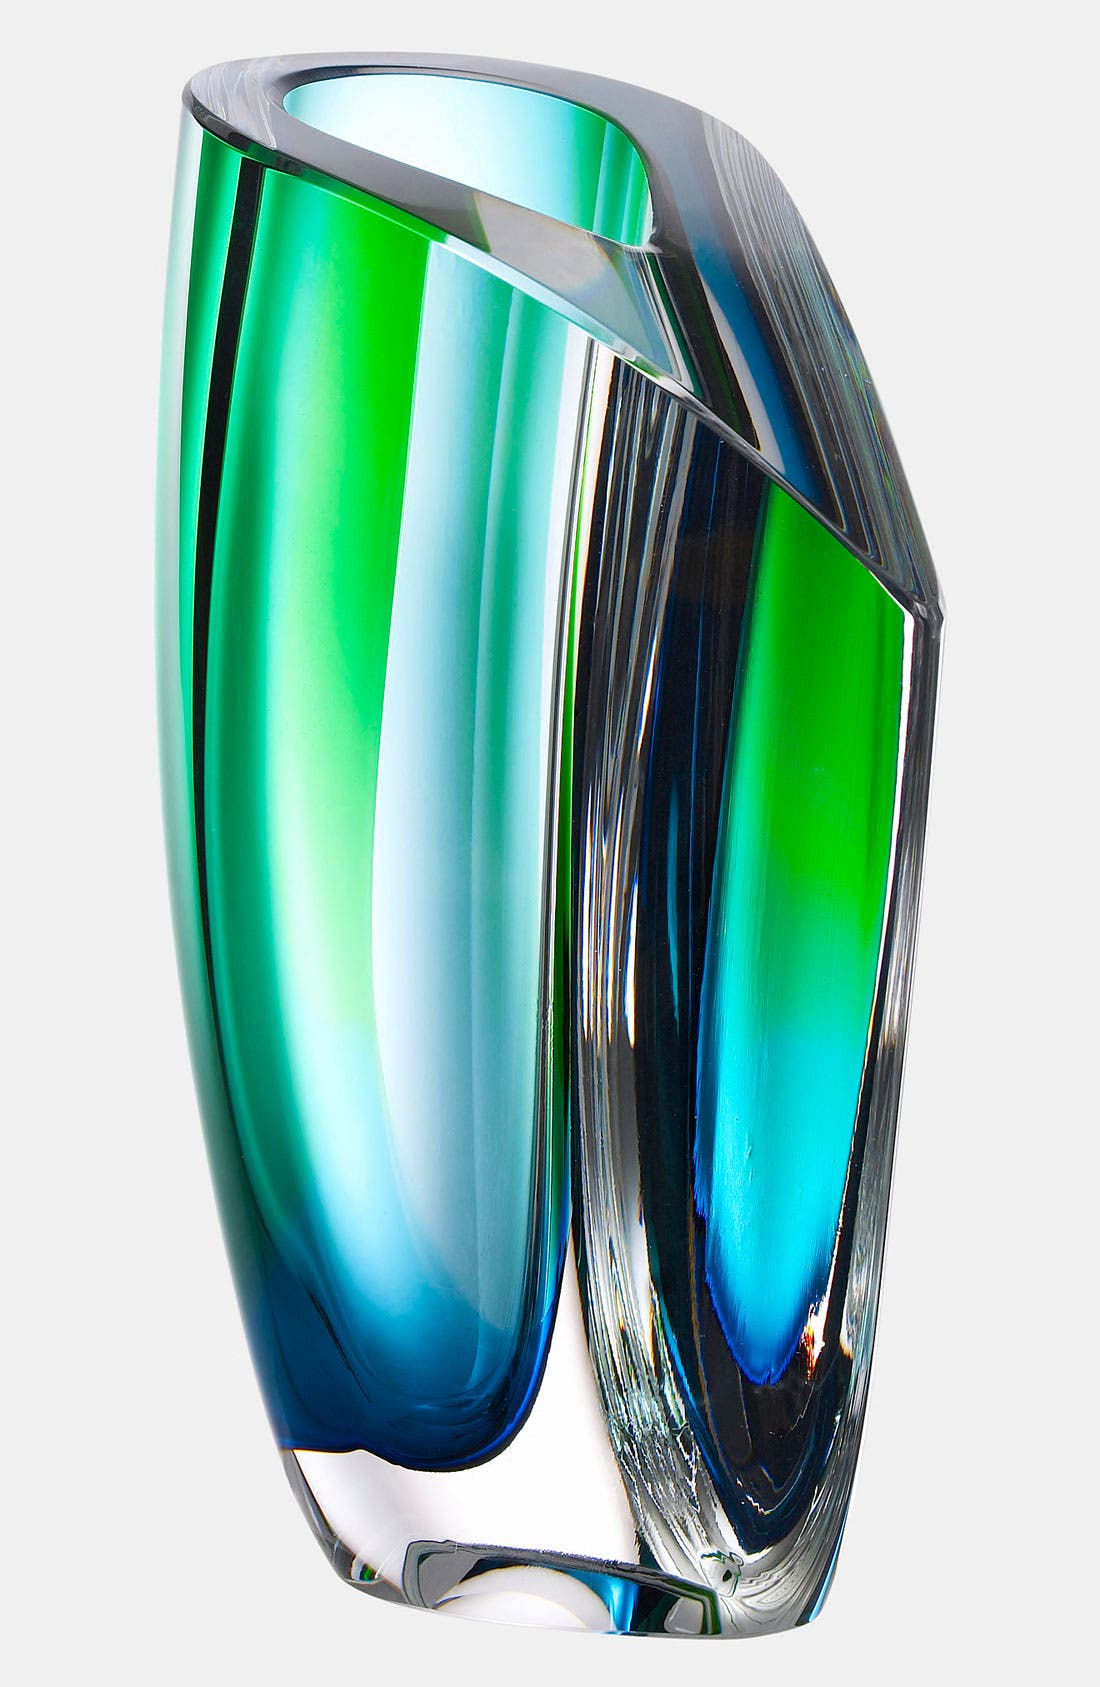 Alternate Image 1 Selected - Kosta Boda 'Mirage' Vase